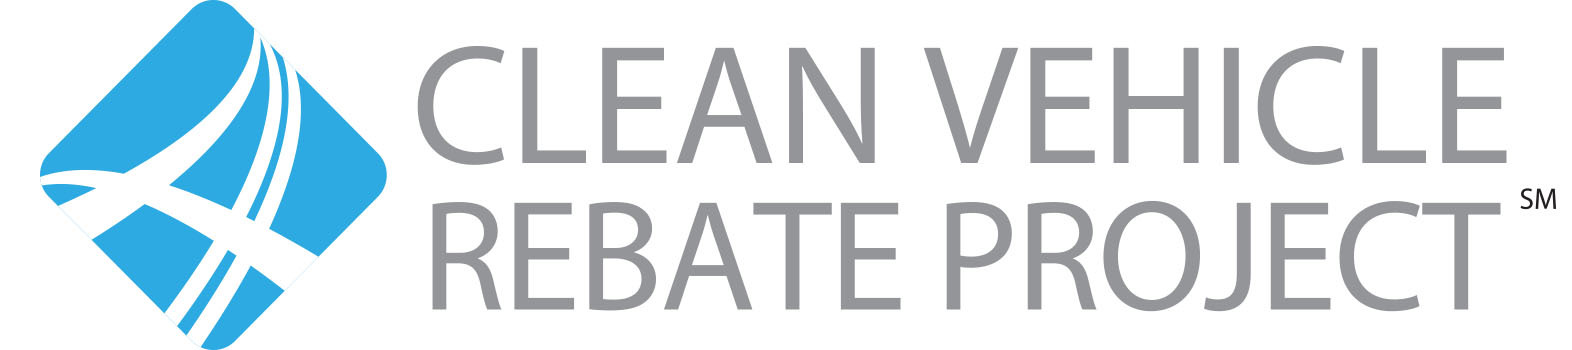 California Clean Vehicle Rebate Project Initiates New Eligibility Requirements Business Wire